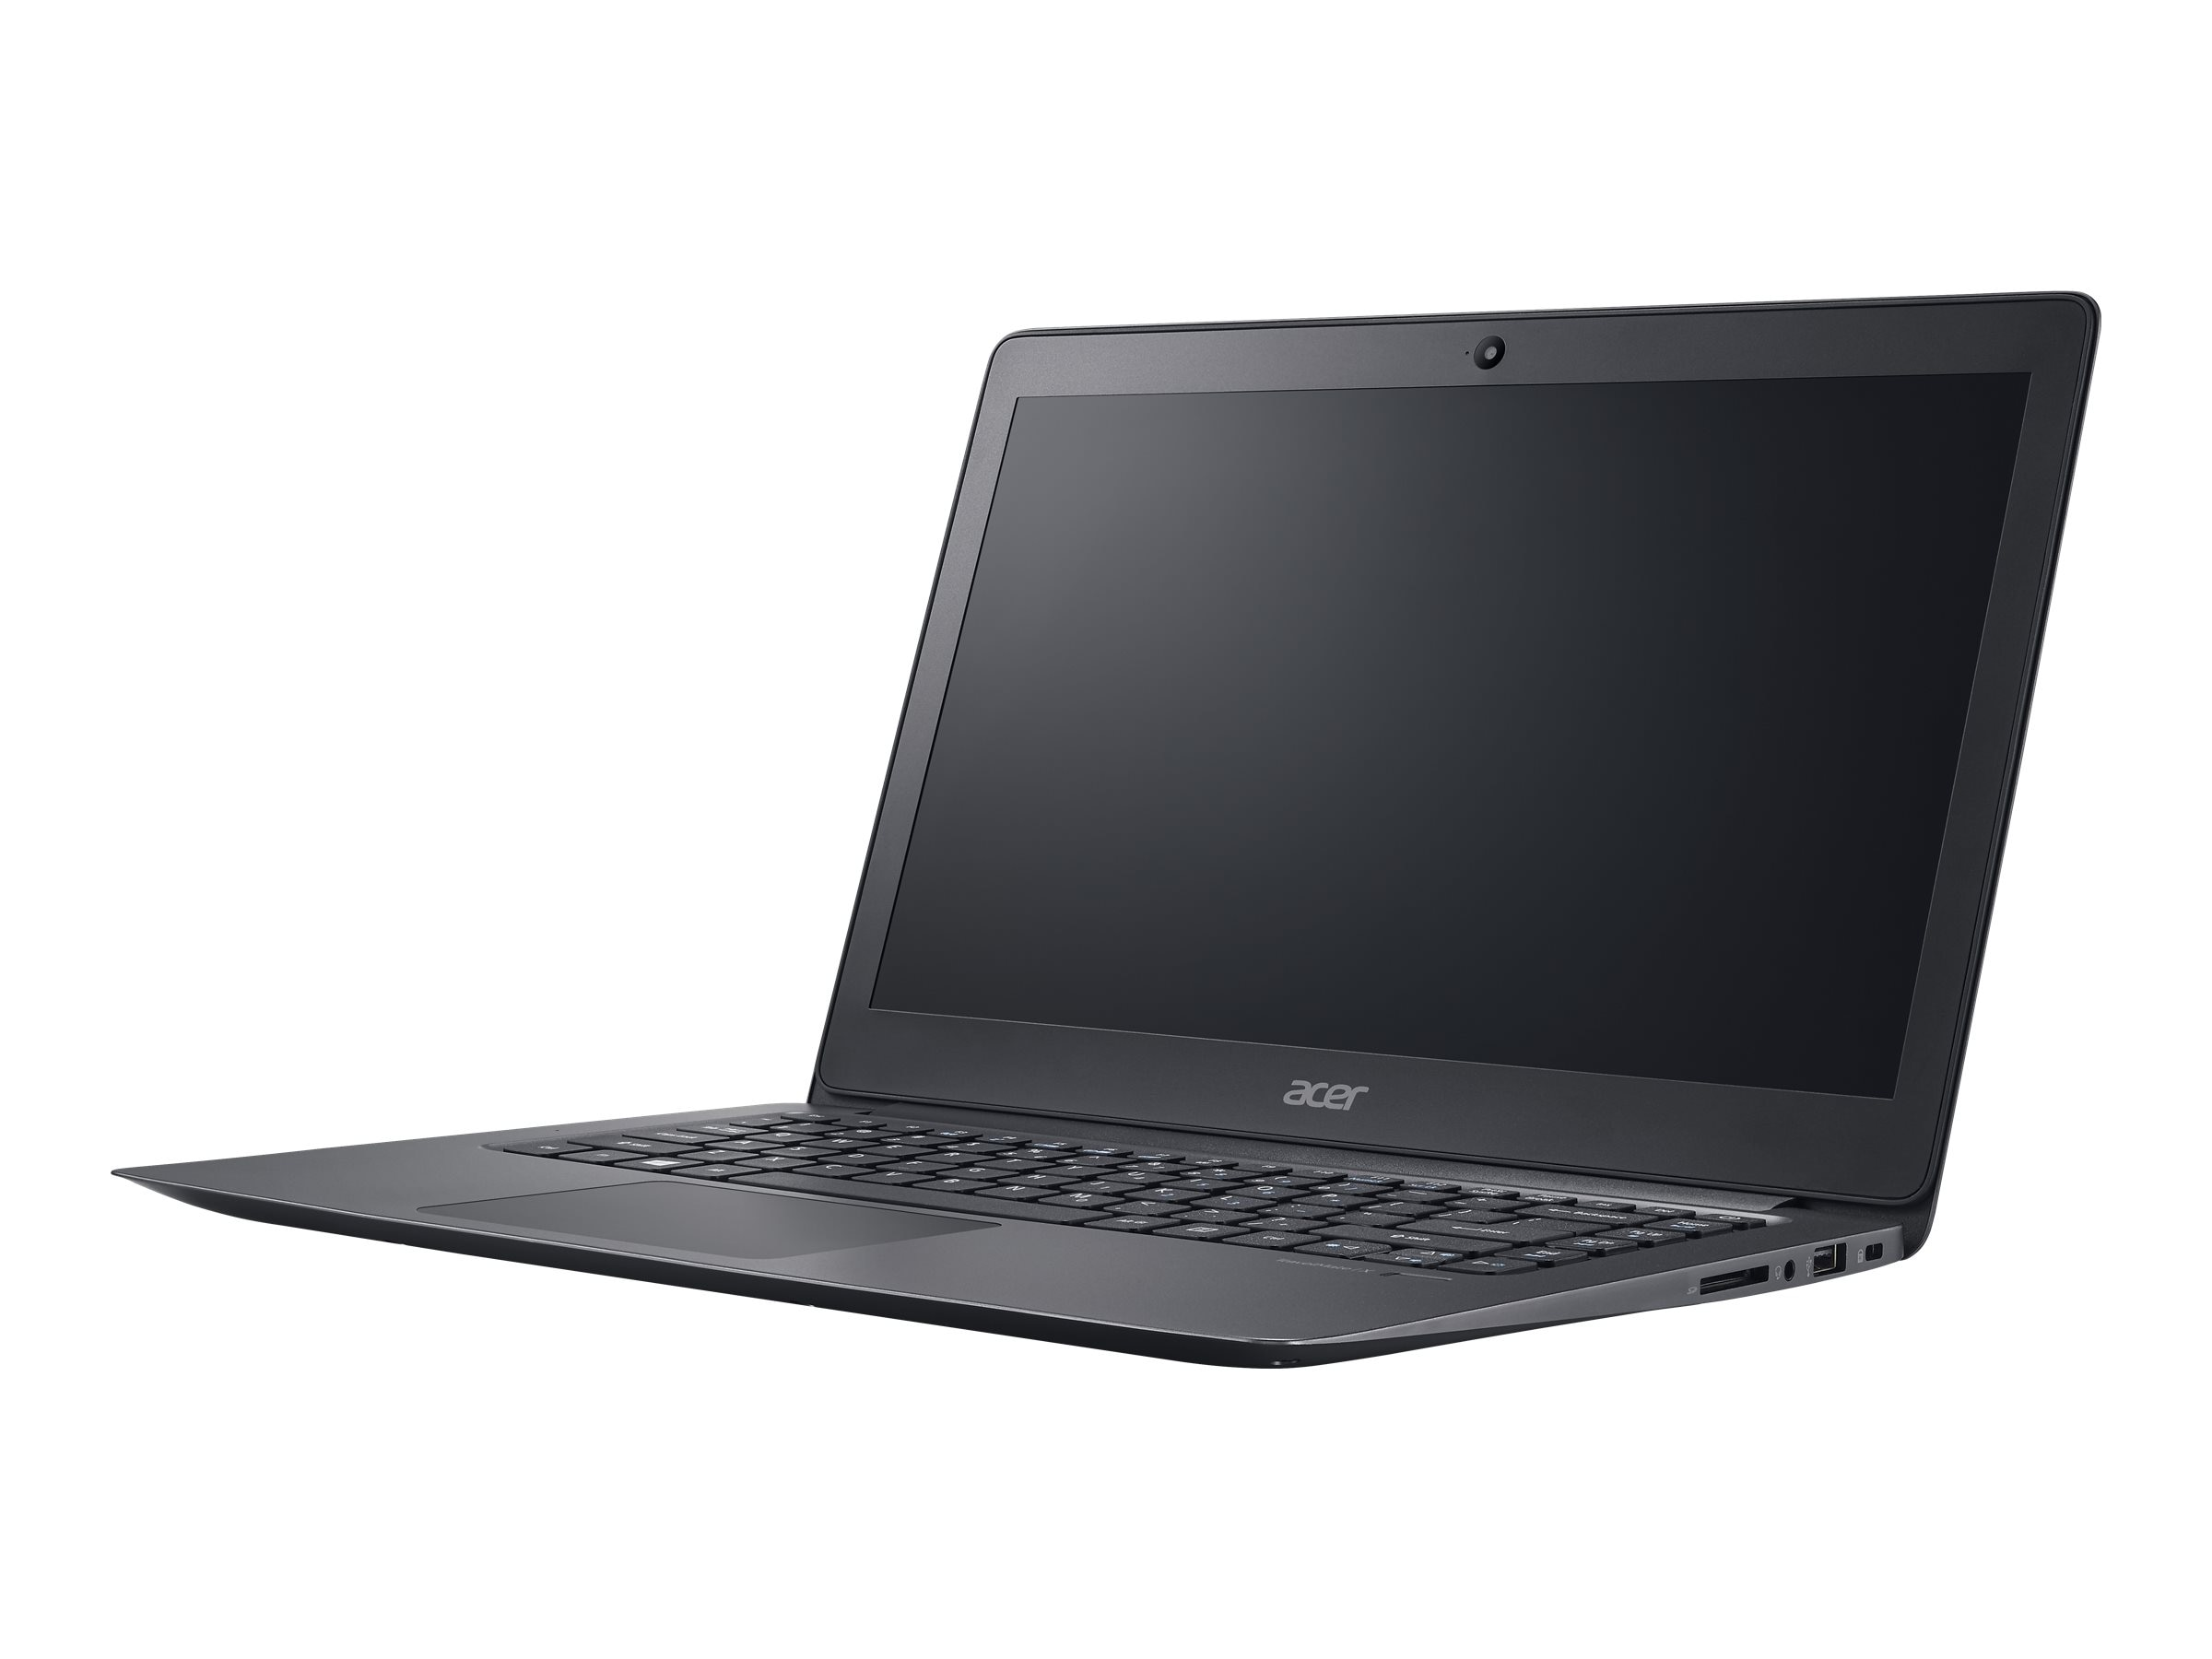 Acer TravelMate X349-M-757X 2.5GHz Core i7 14in display, NX.VDFAA.009, 32718594, Notebooks